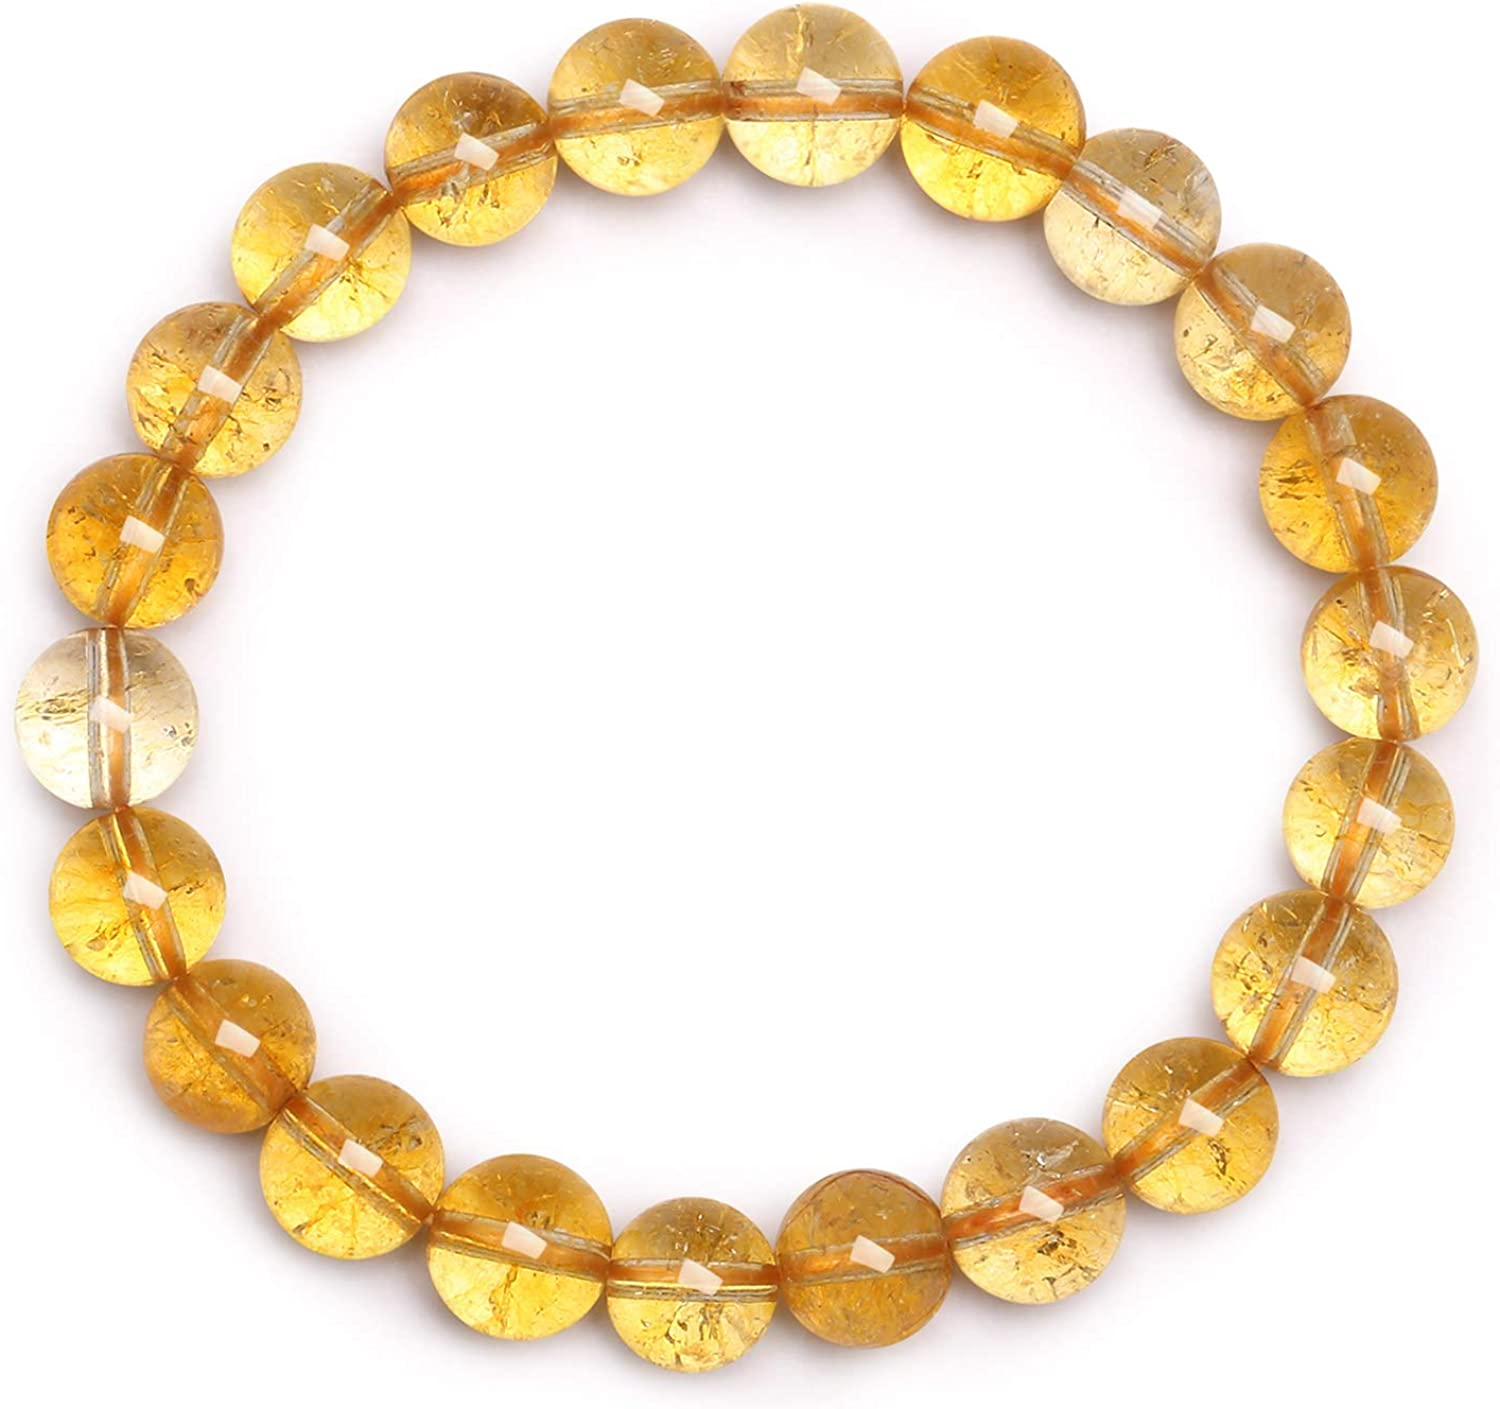 New Handmade 12 mm NATURAL YELLOW JADE RONDE pierres précieuses perles Stretch Bracelet